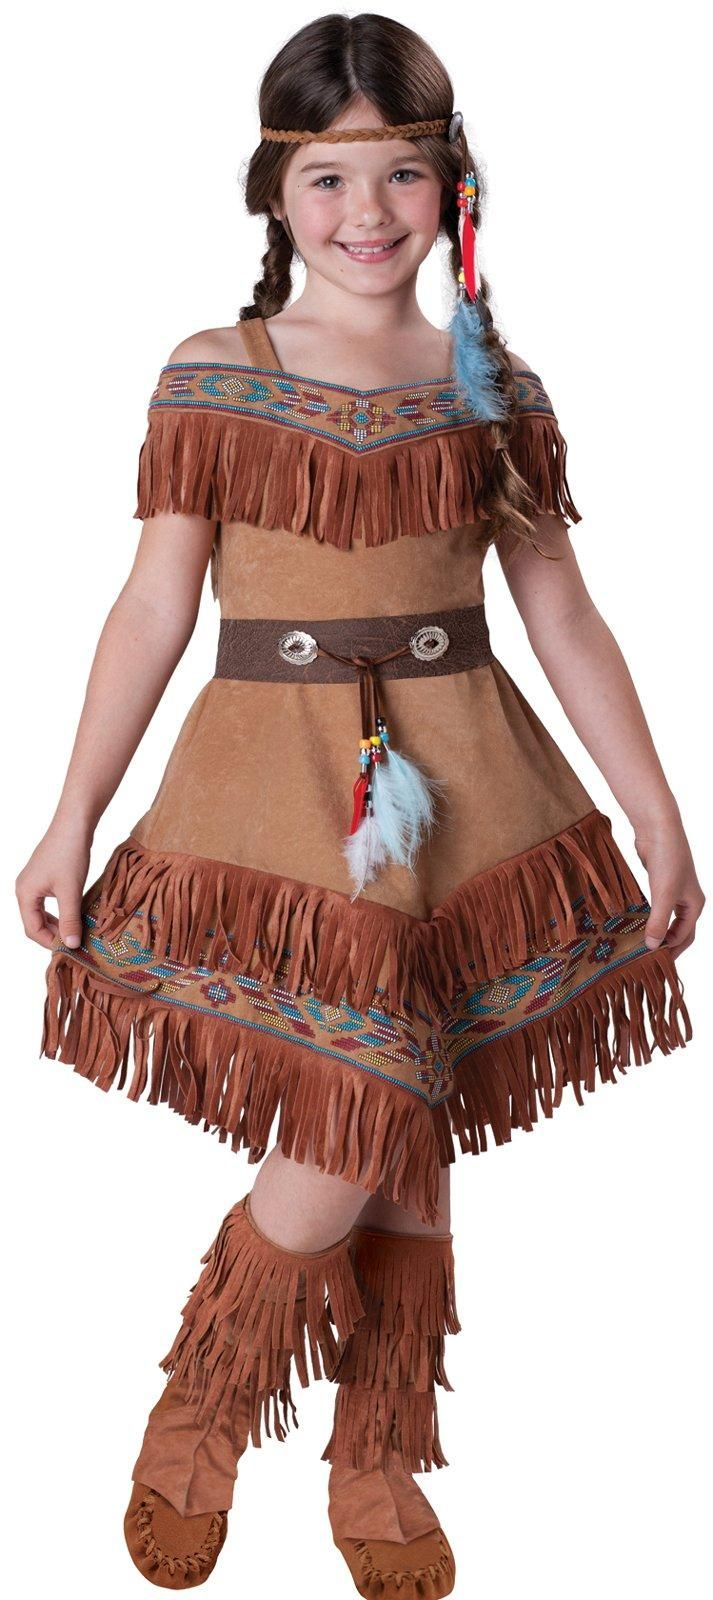 Indian Maiden Child Costume from Buycostumes.com